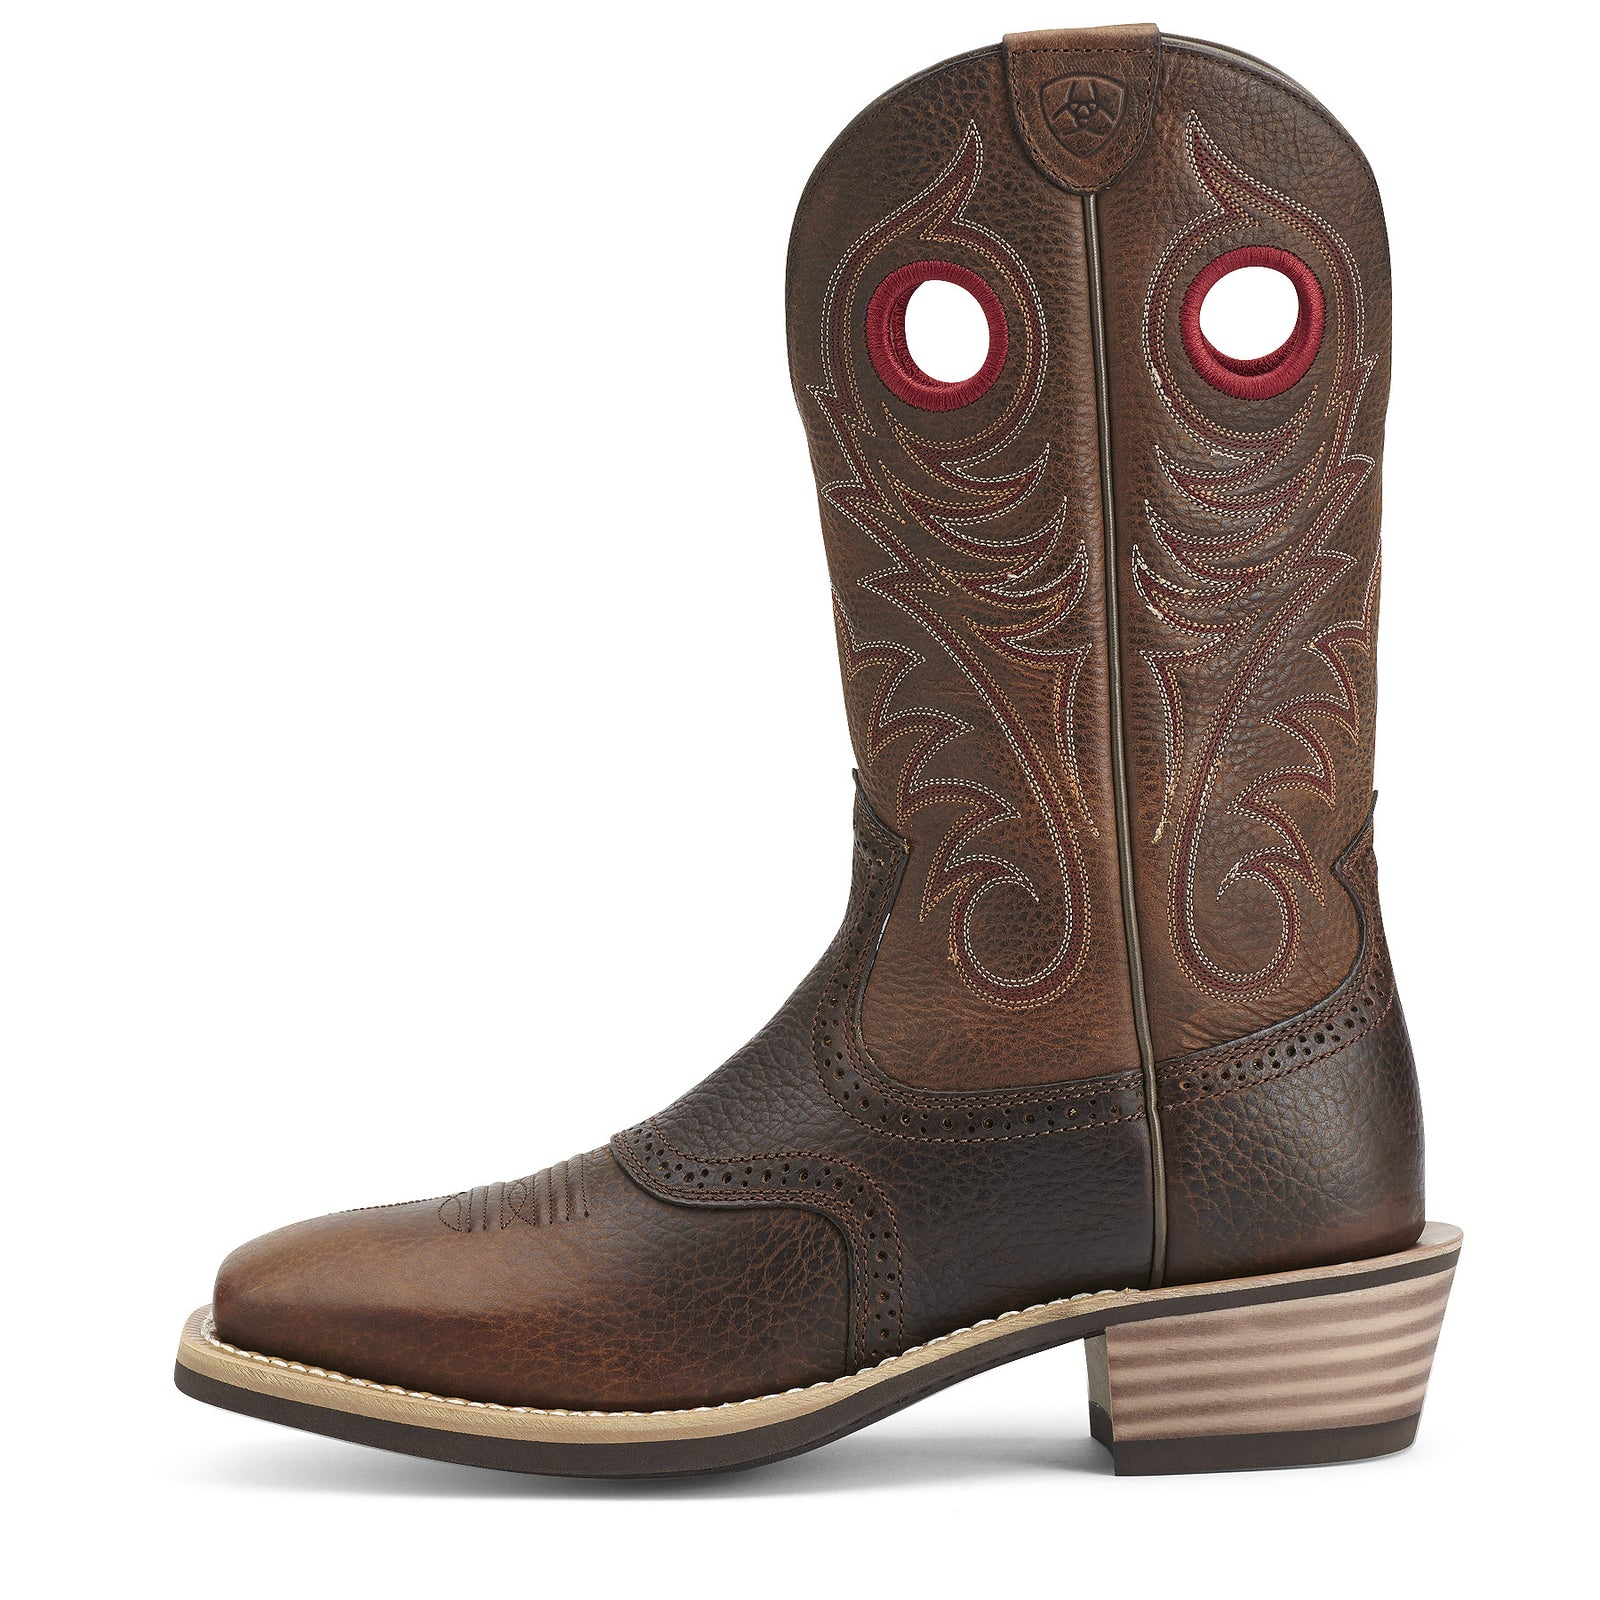 bb8895b66d1 Heritage Roughstock Wide Square Toe Boots